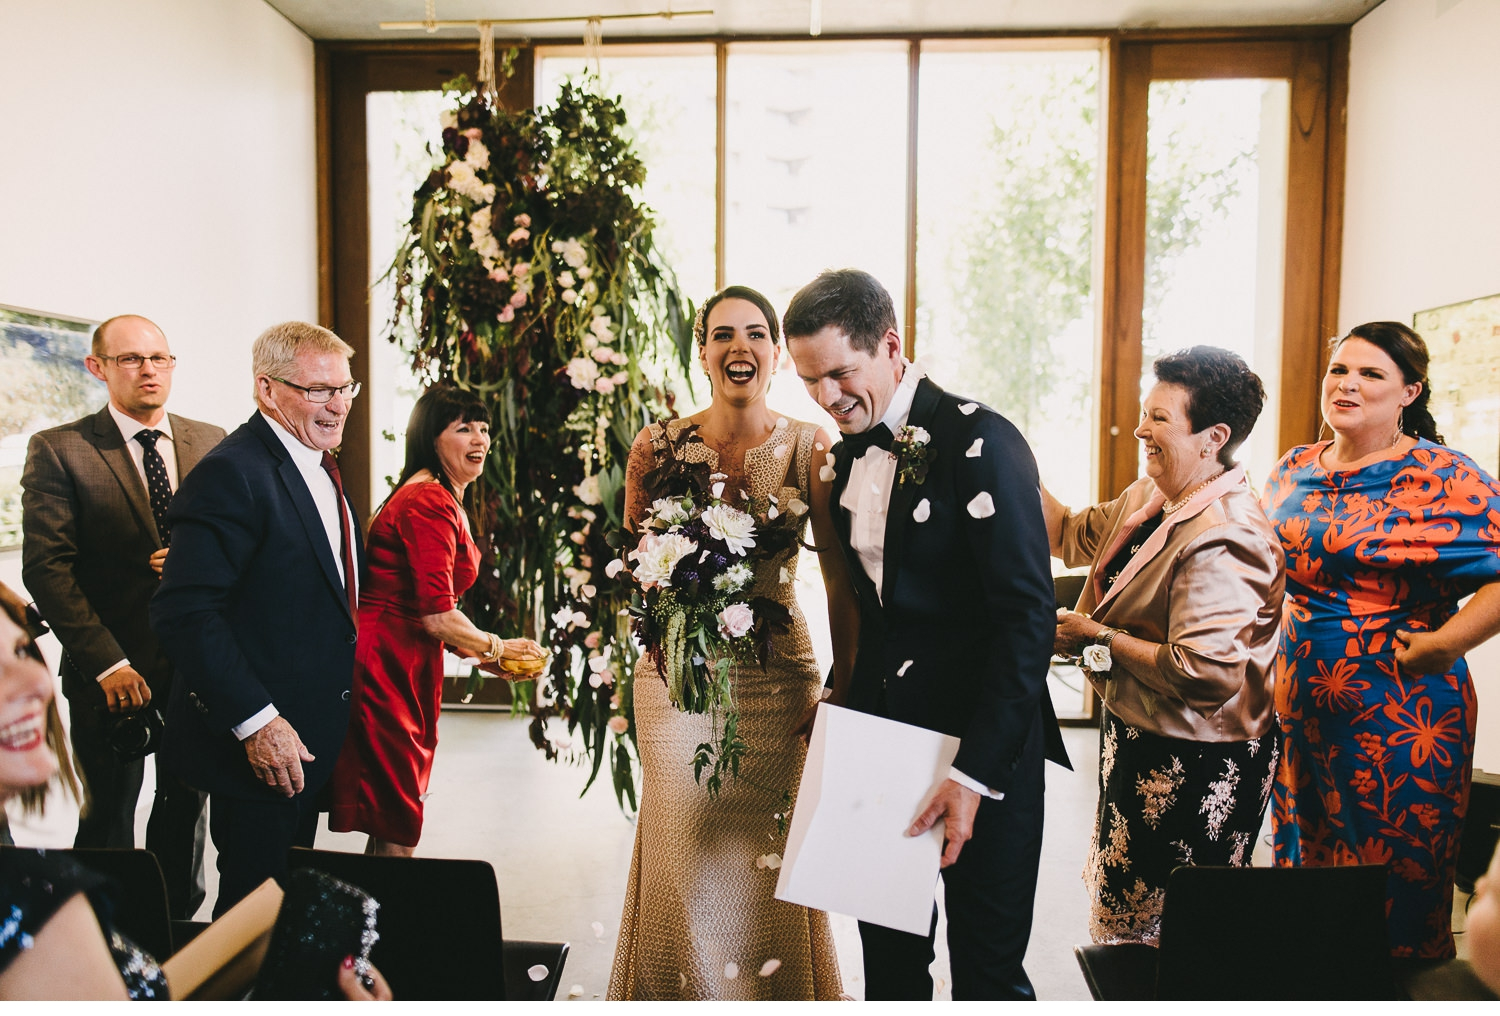 Morgan Roberts Photography_Wedding_nishi gallery hotel hotel_Jay and Lucy 2109.jpg